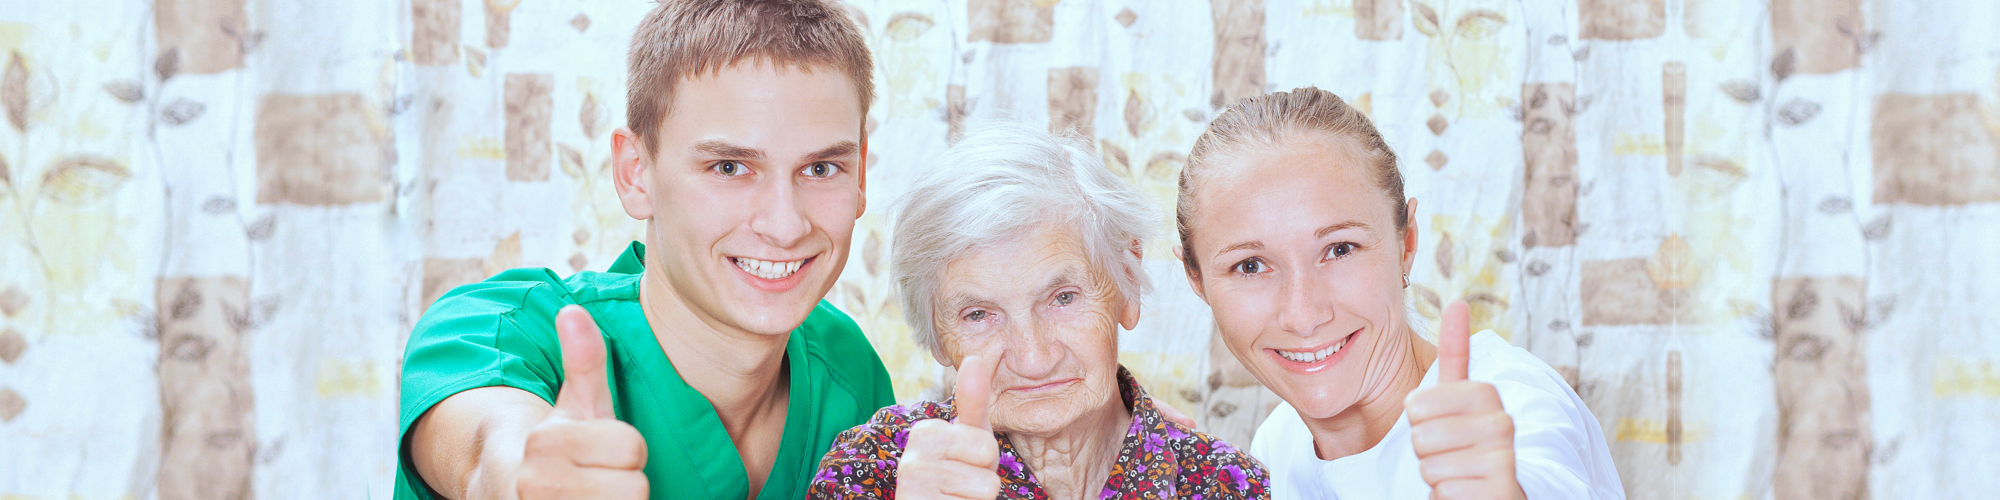 caregivers and senior woman showing thumbs up